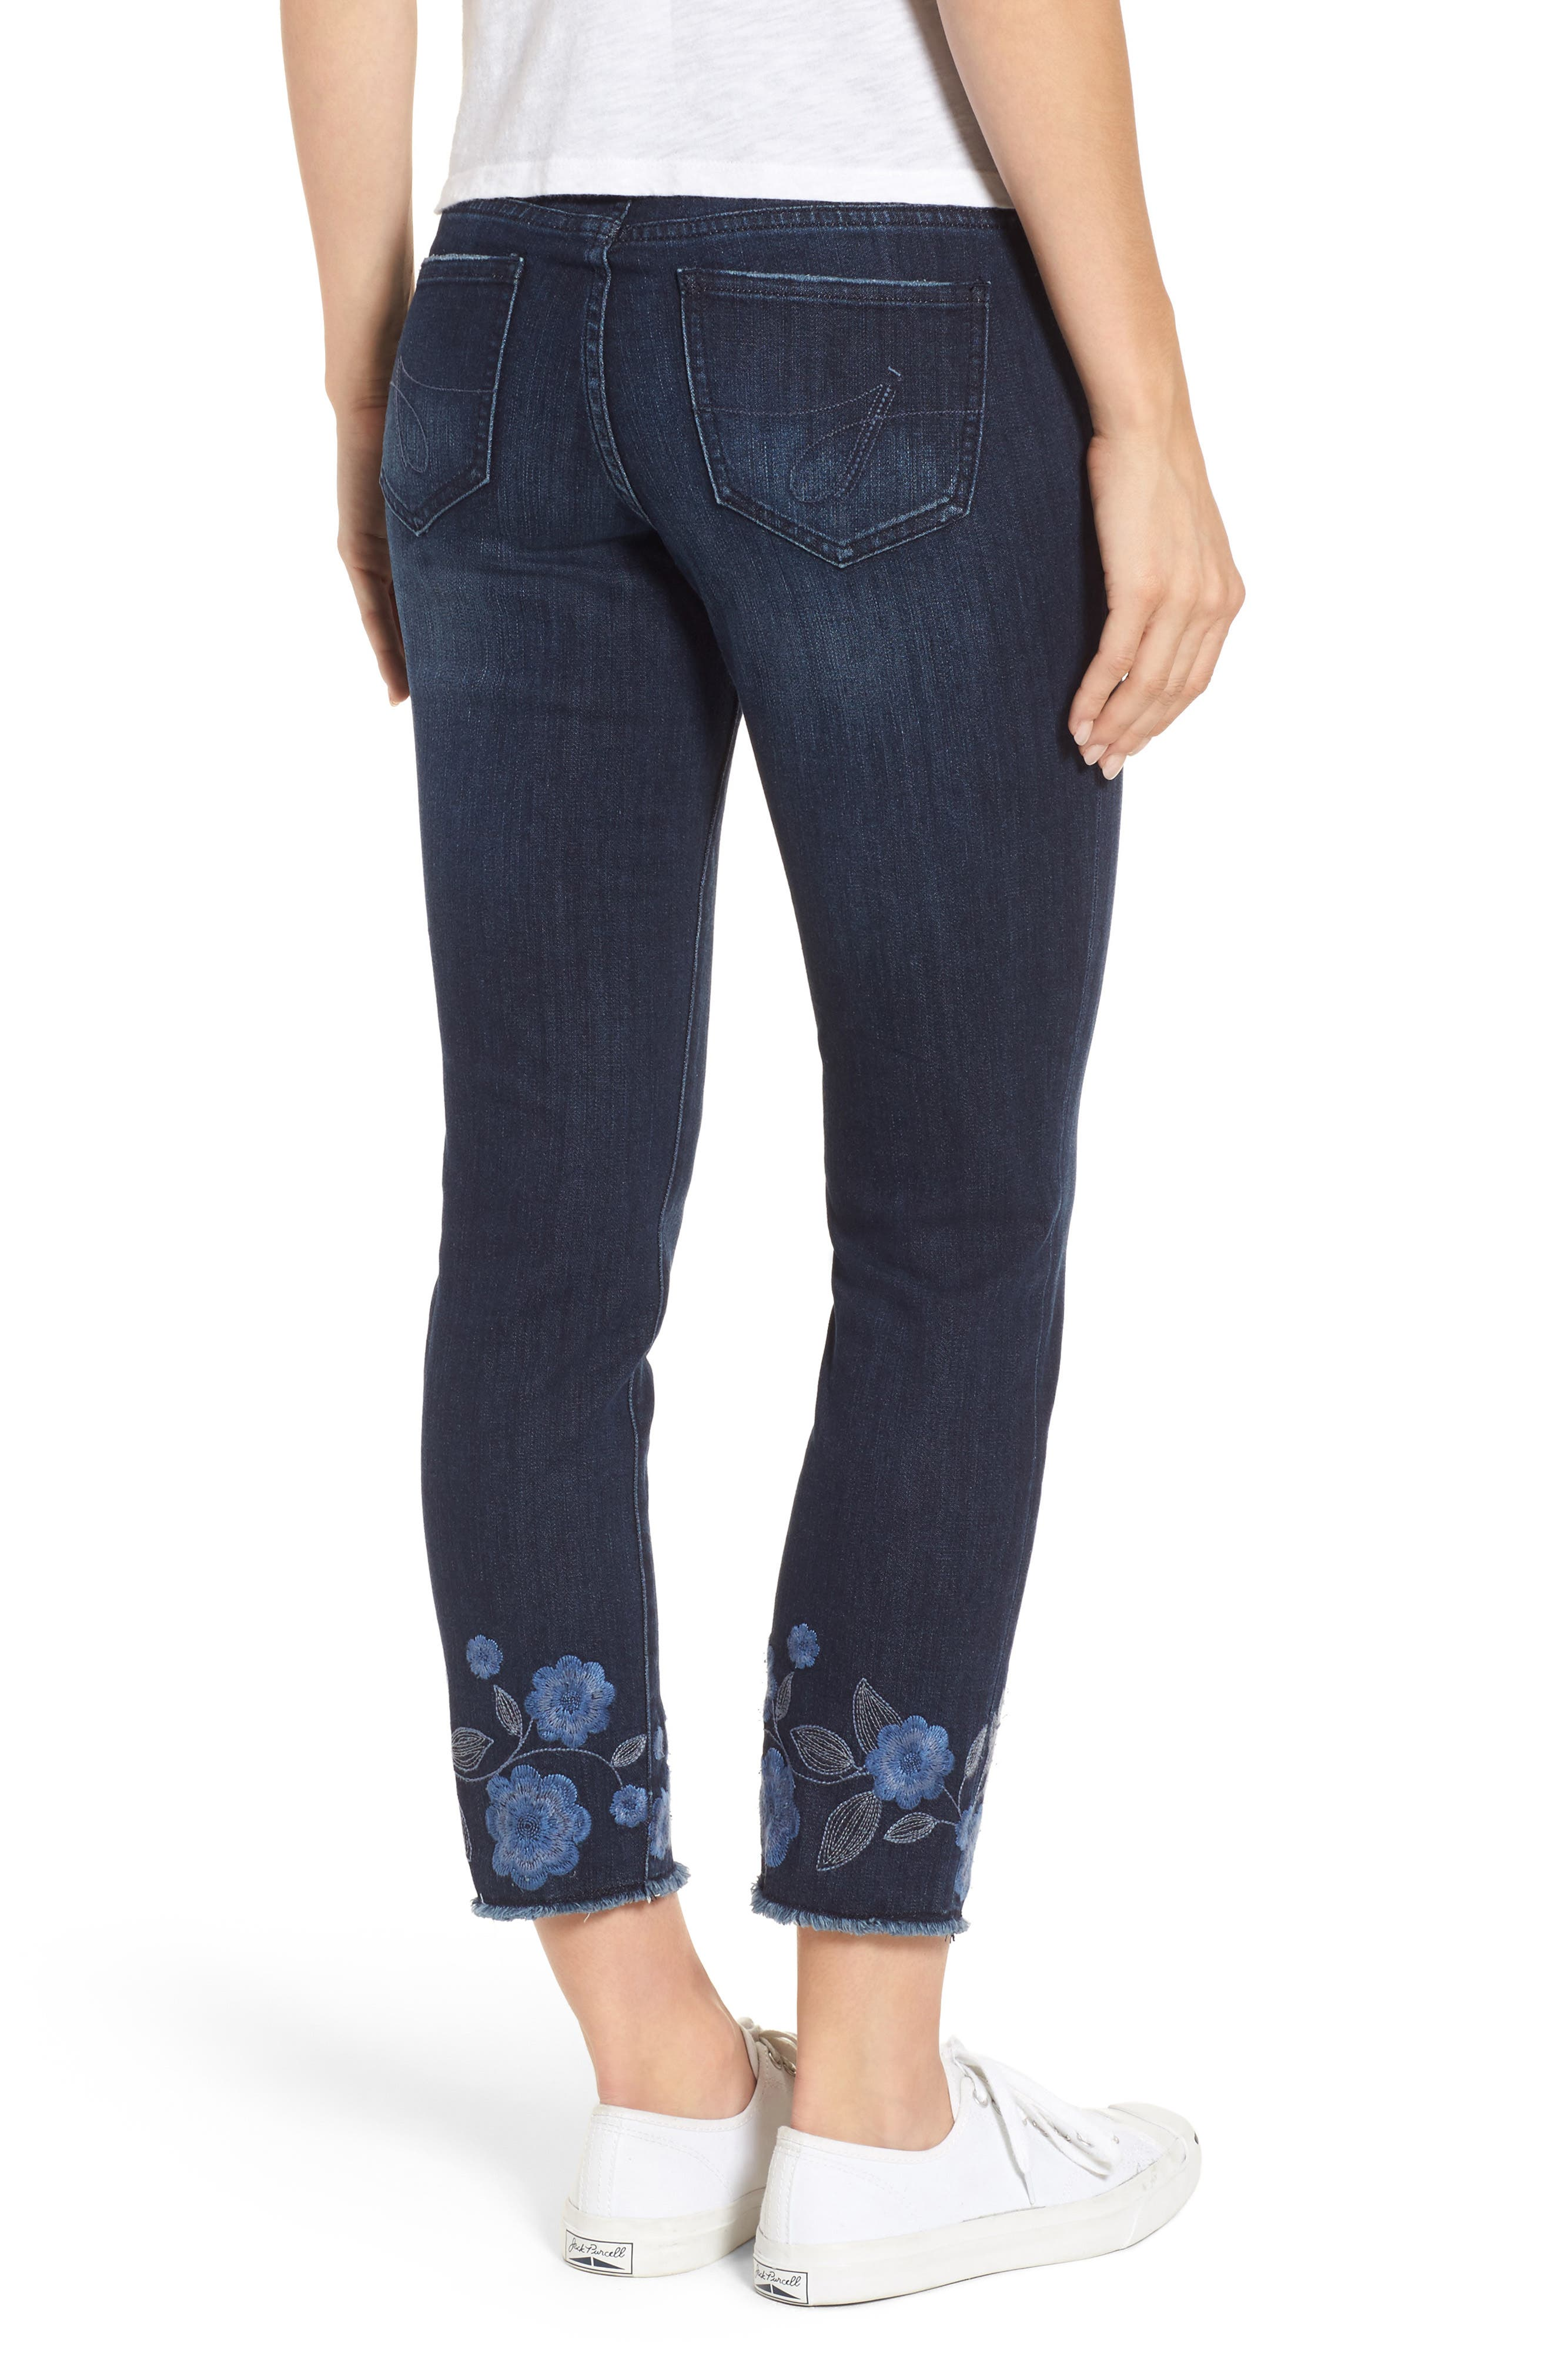 Amelia Embroidered Slim Ankle Jeans,                             Alternate thumbnail 2, color,                             402